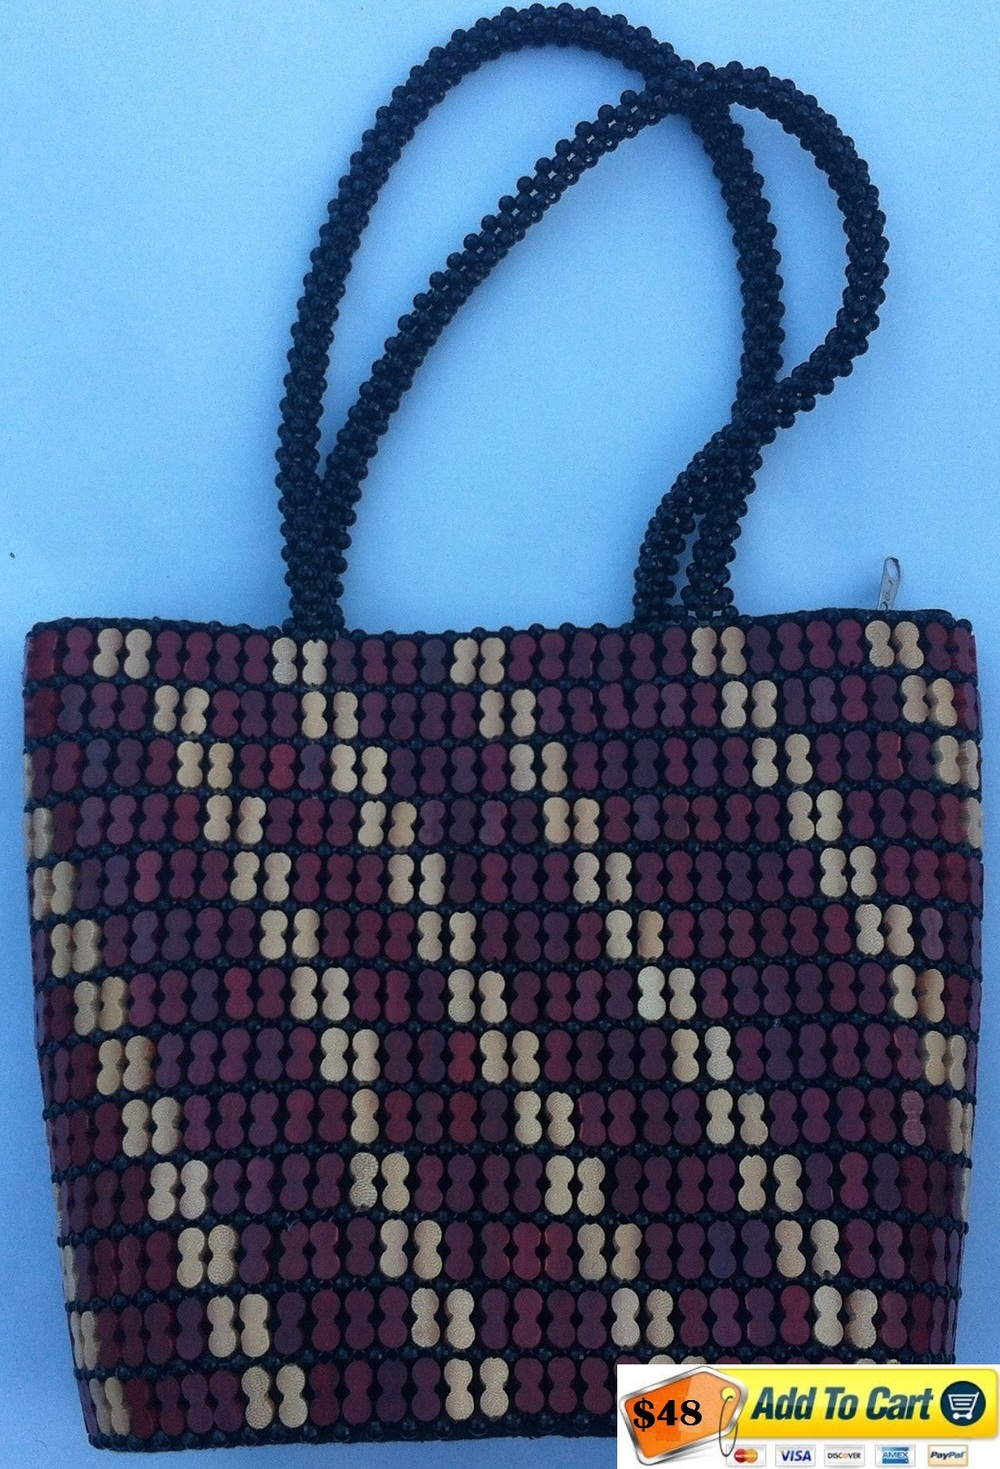 AWB 106. African Women's Bag